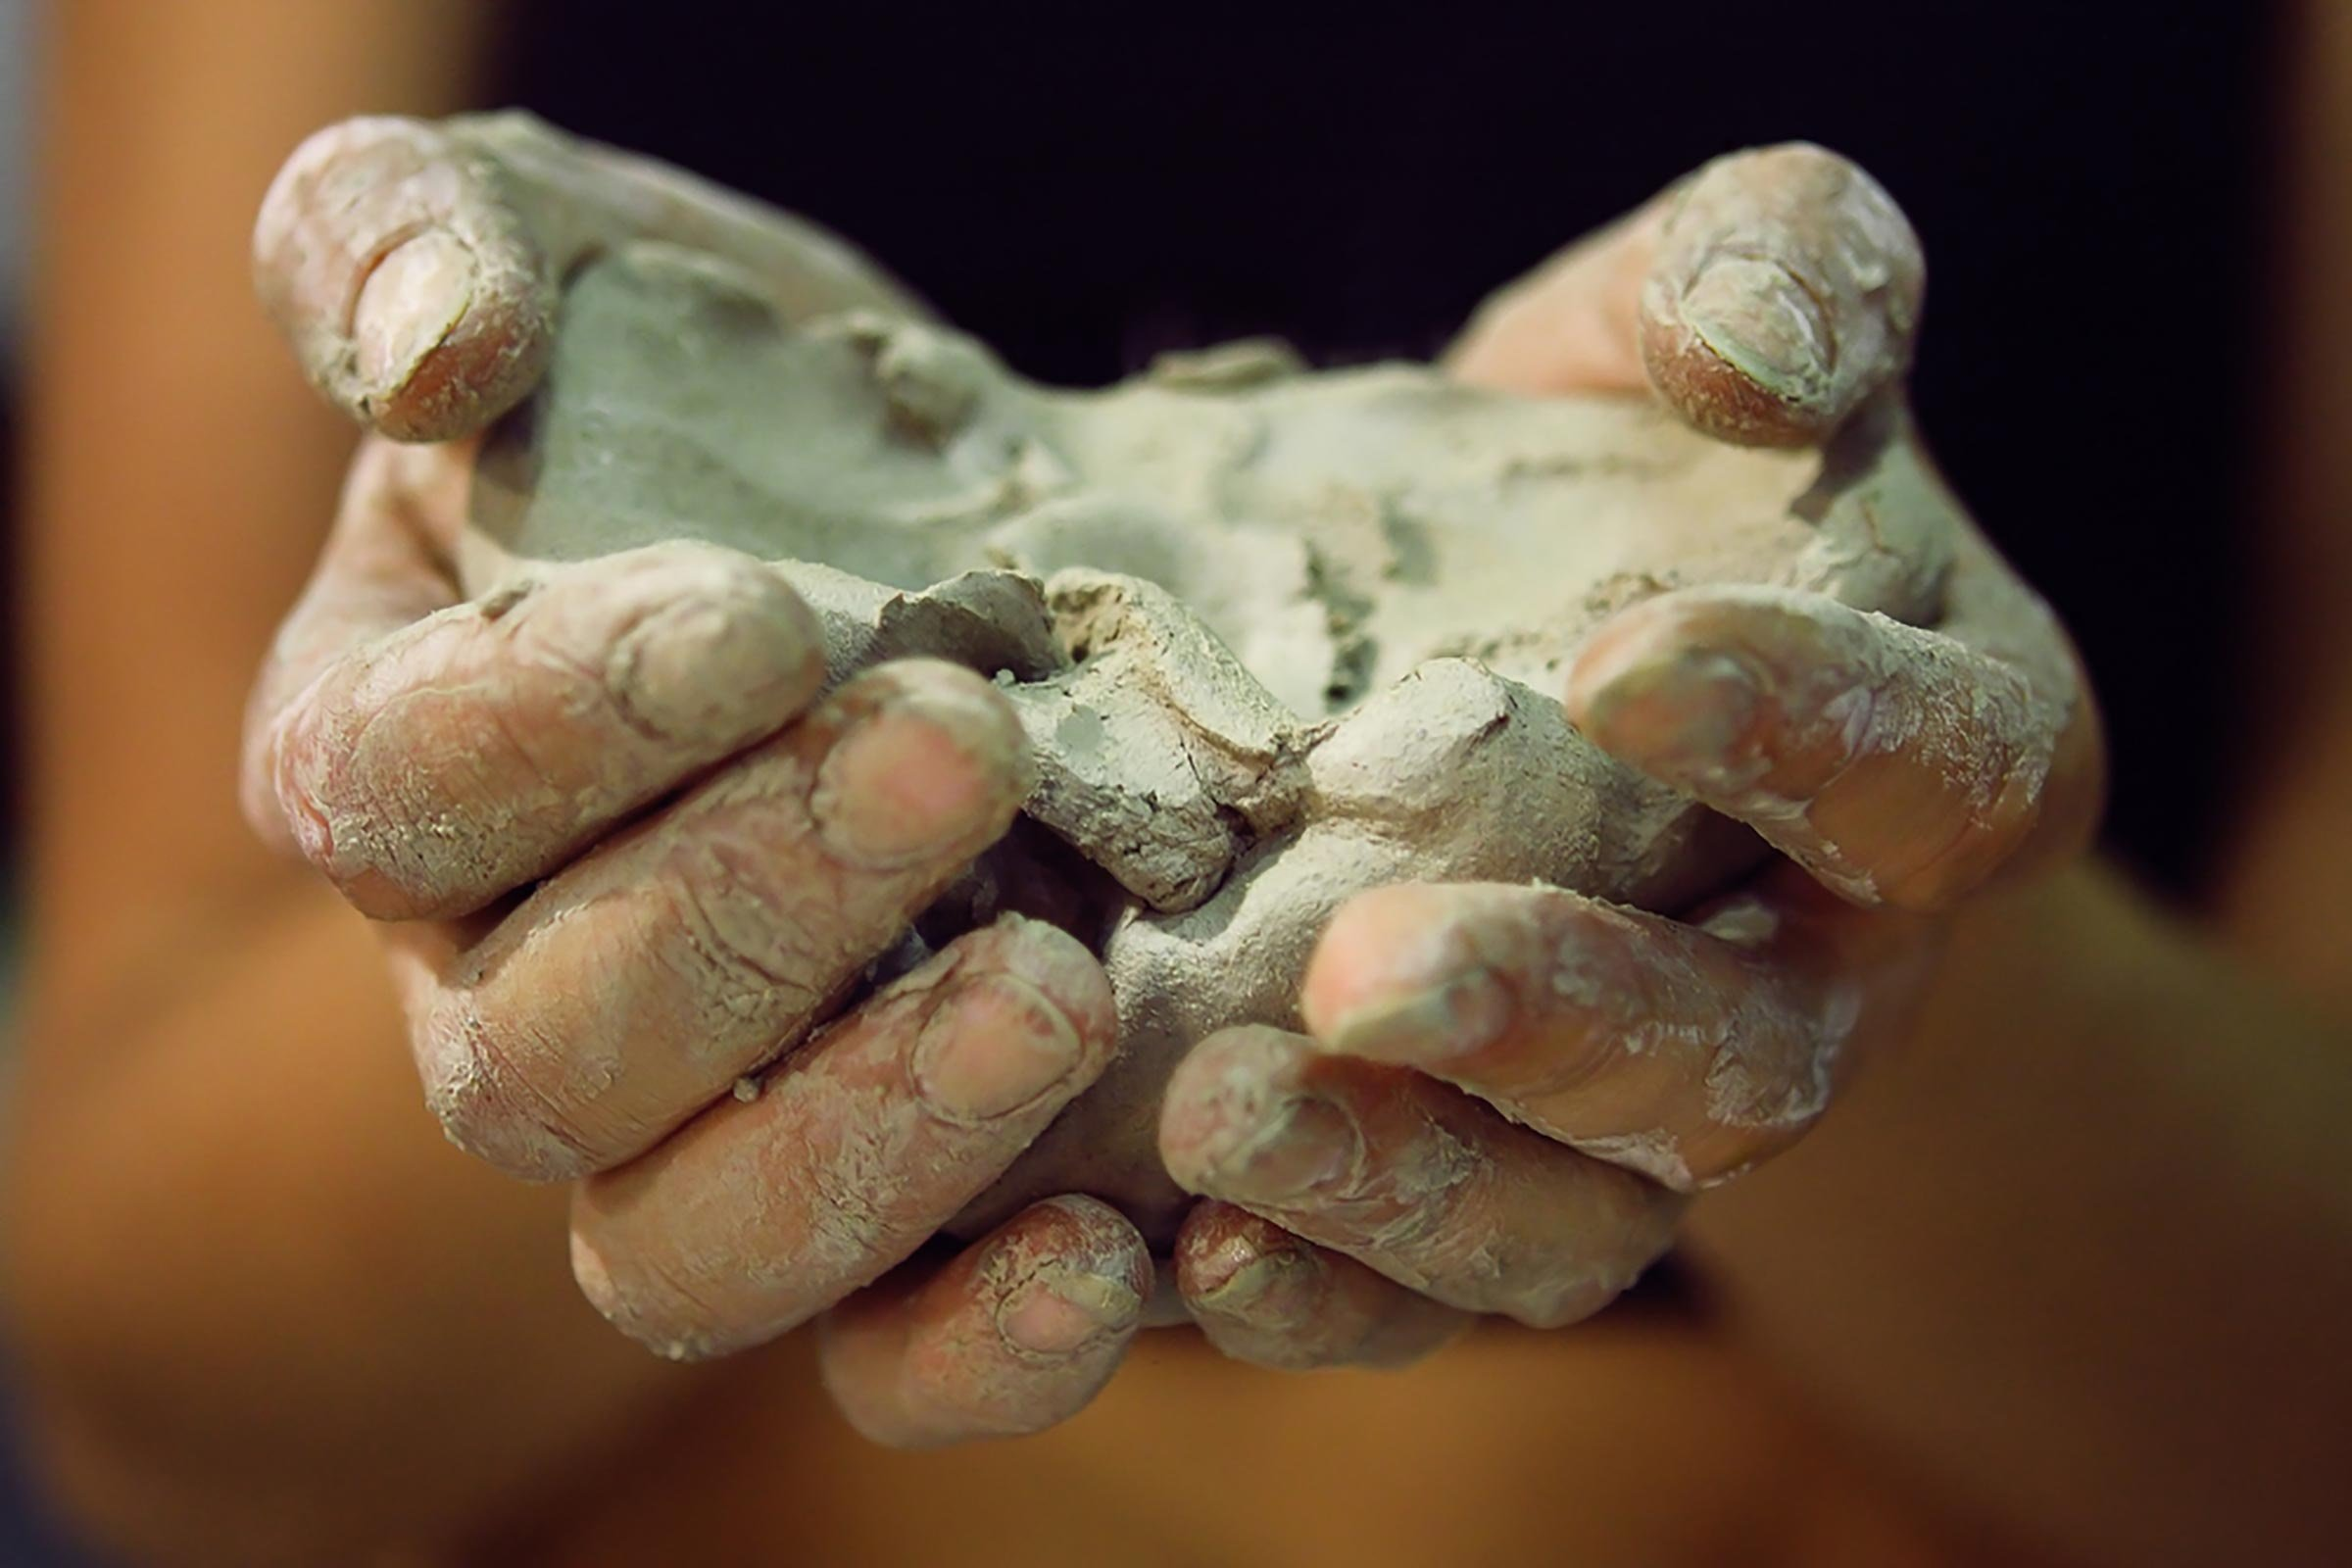 Molded clay on hands